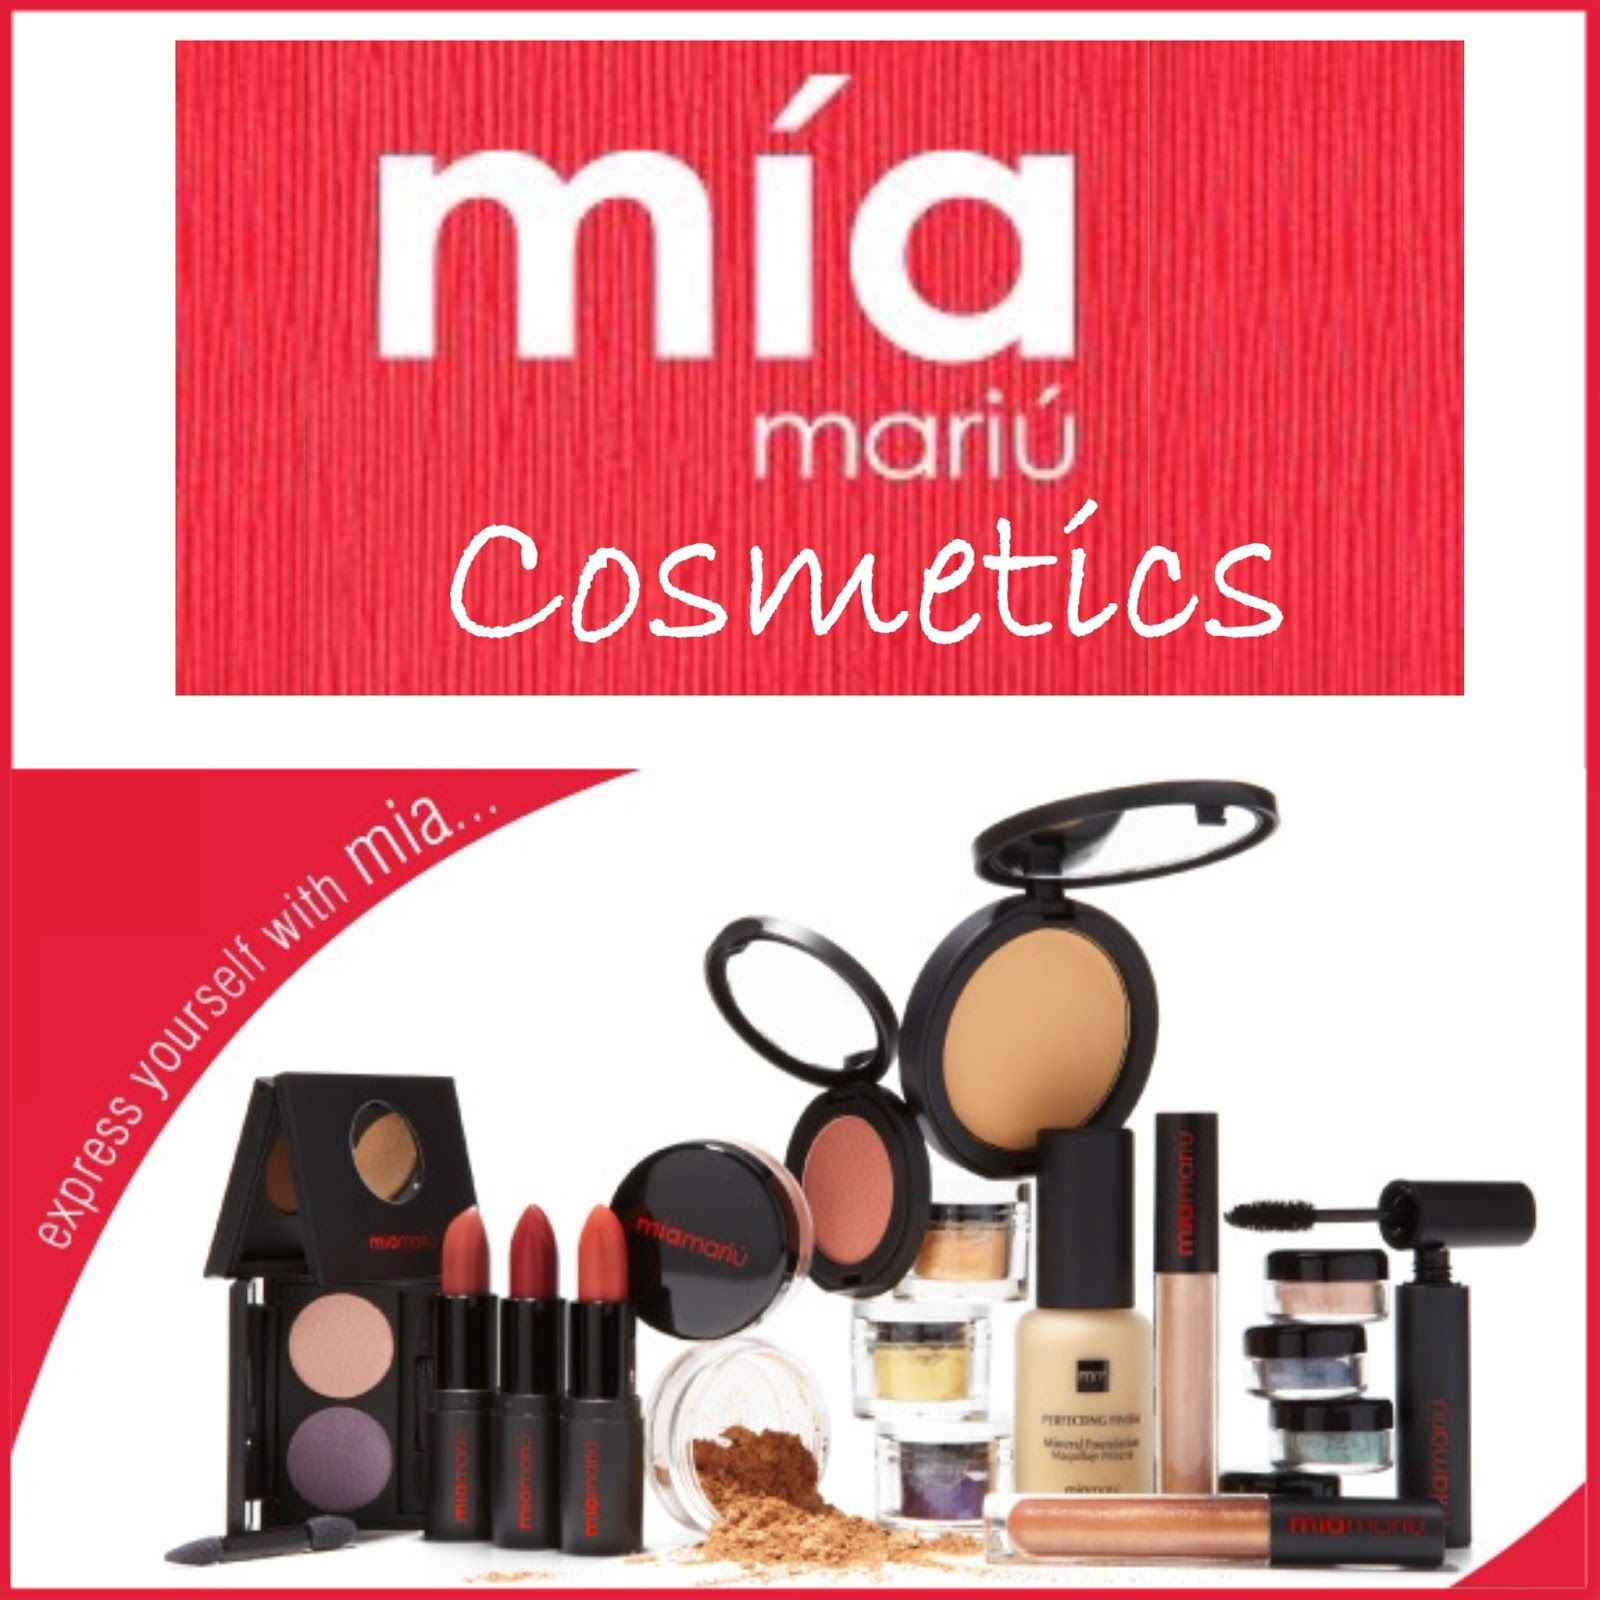 Royalegacy Reviews and More: Bring Out Your Beauty with Mia Mariu Mineral Cosmetics - Review & $60 Prize Package Giveaway - ends 12/29 US #mineralcosmetics